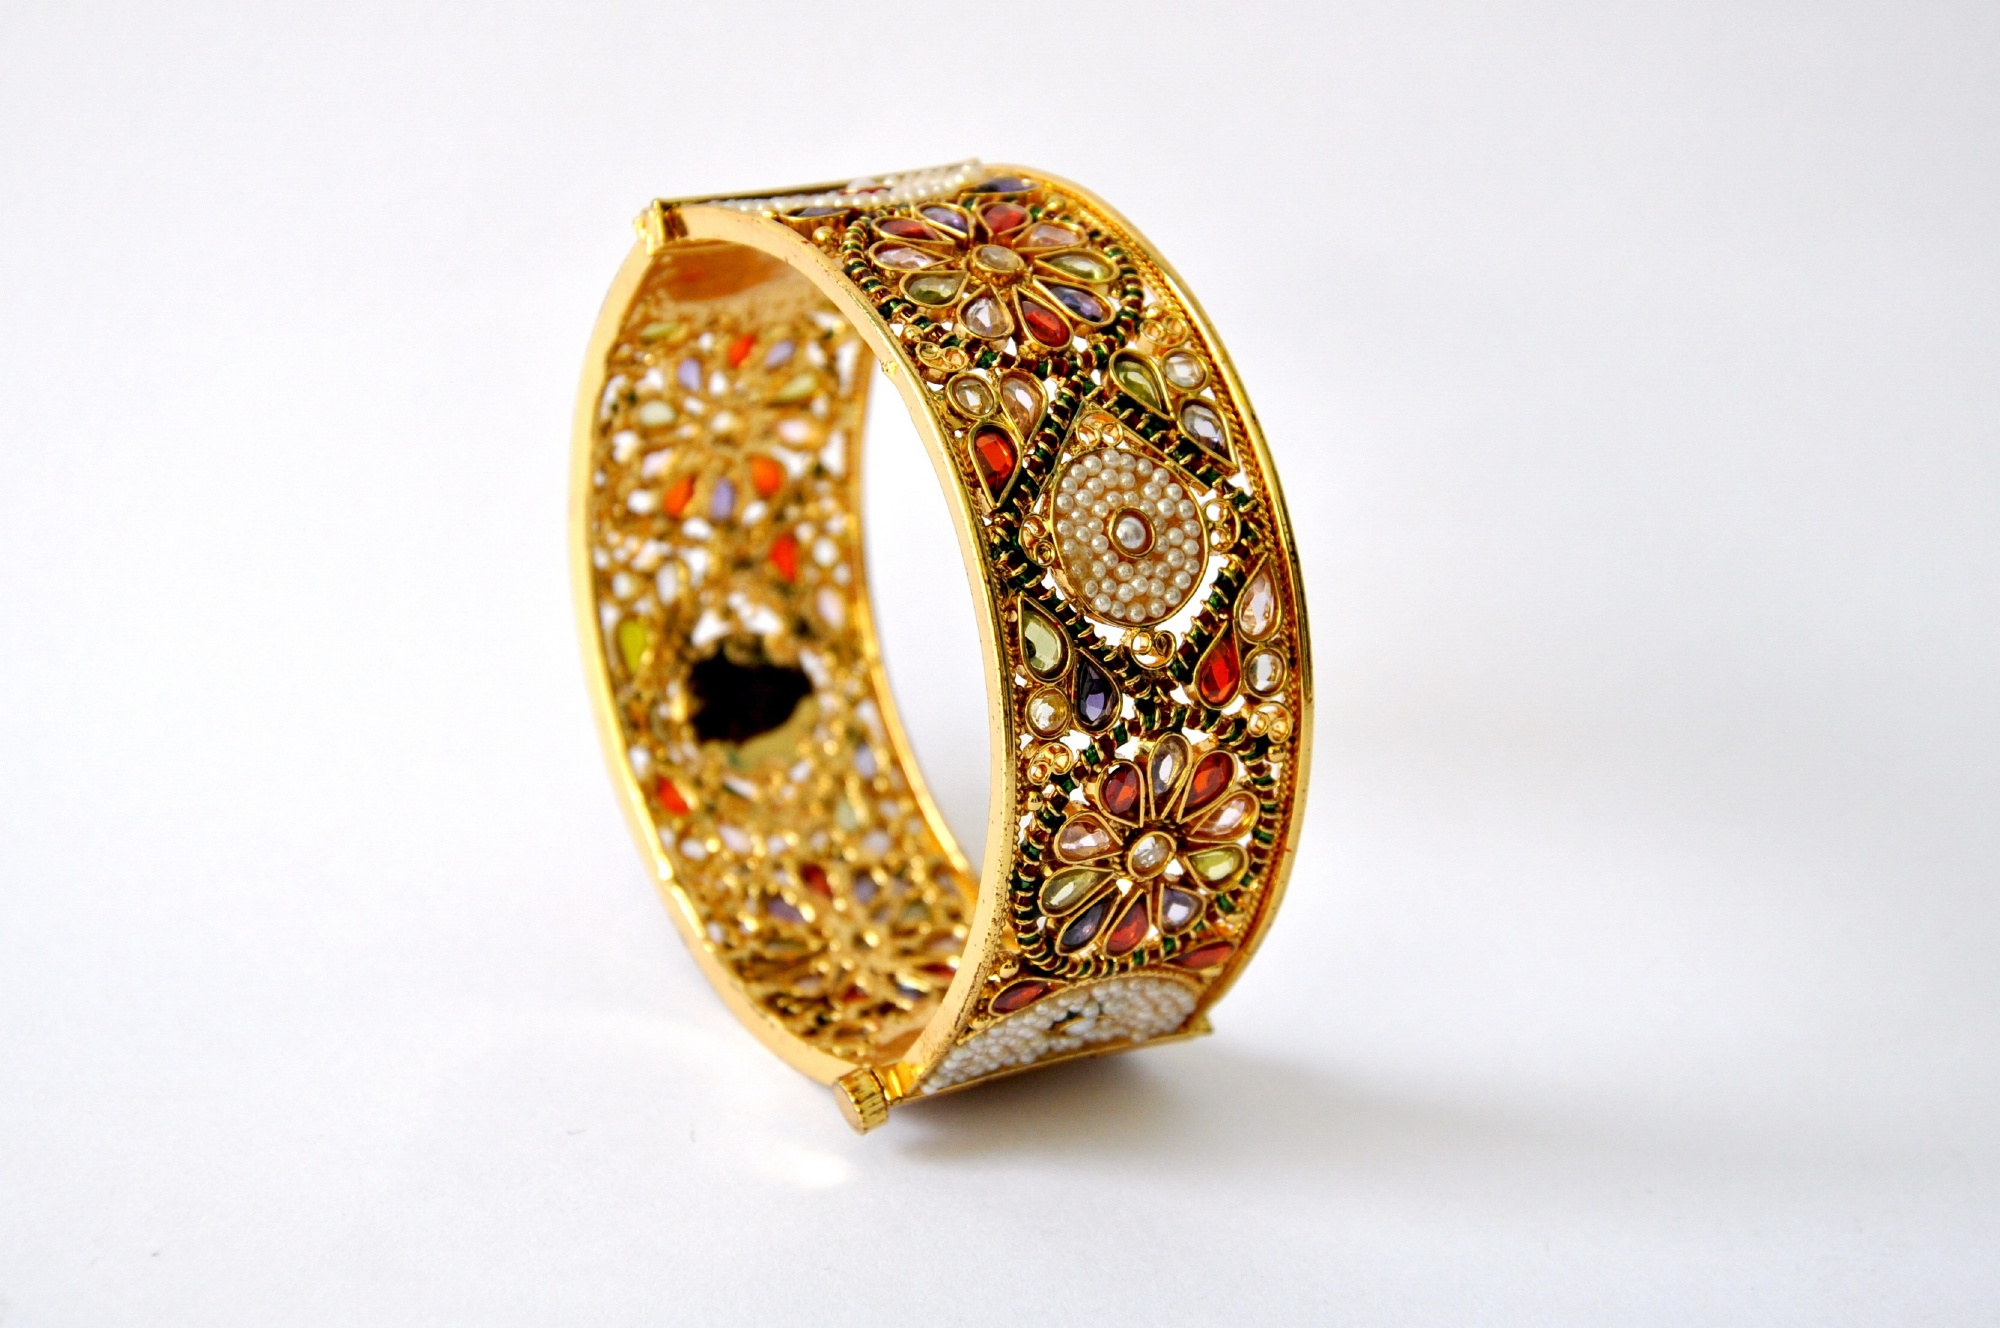 Gold bangle photo